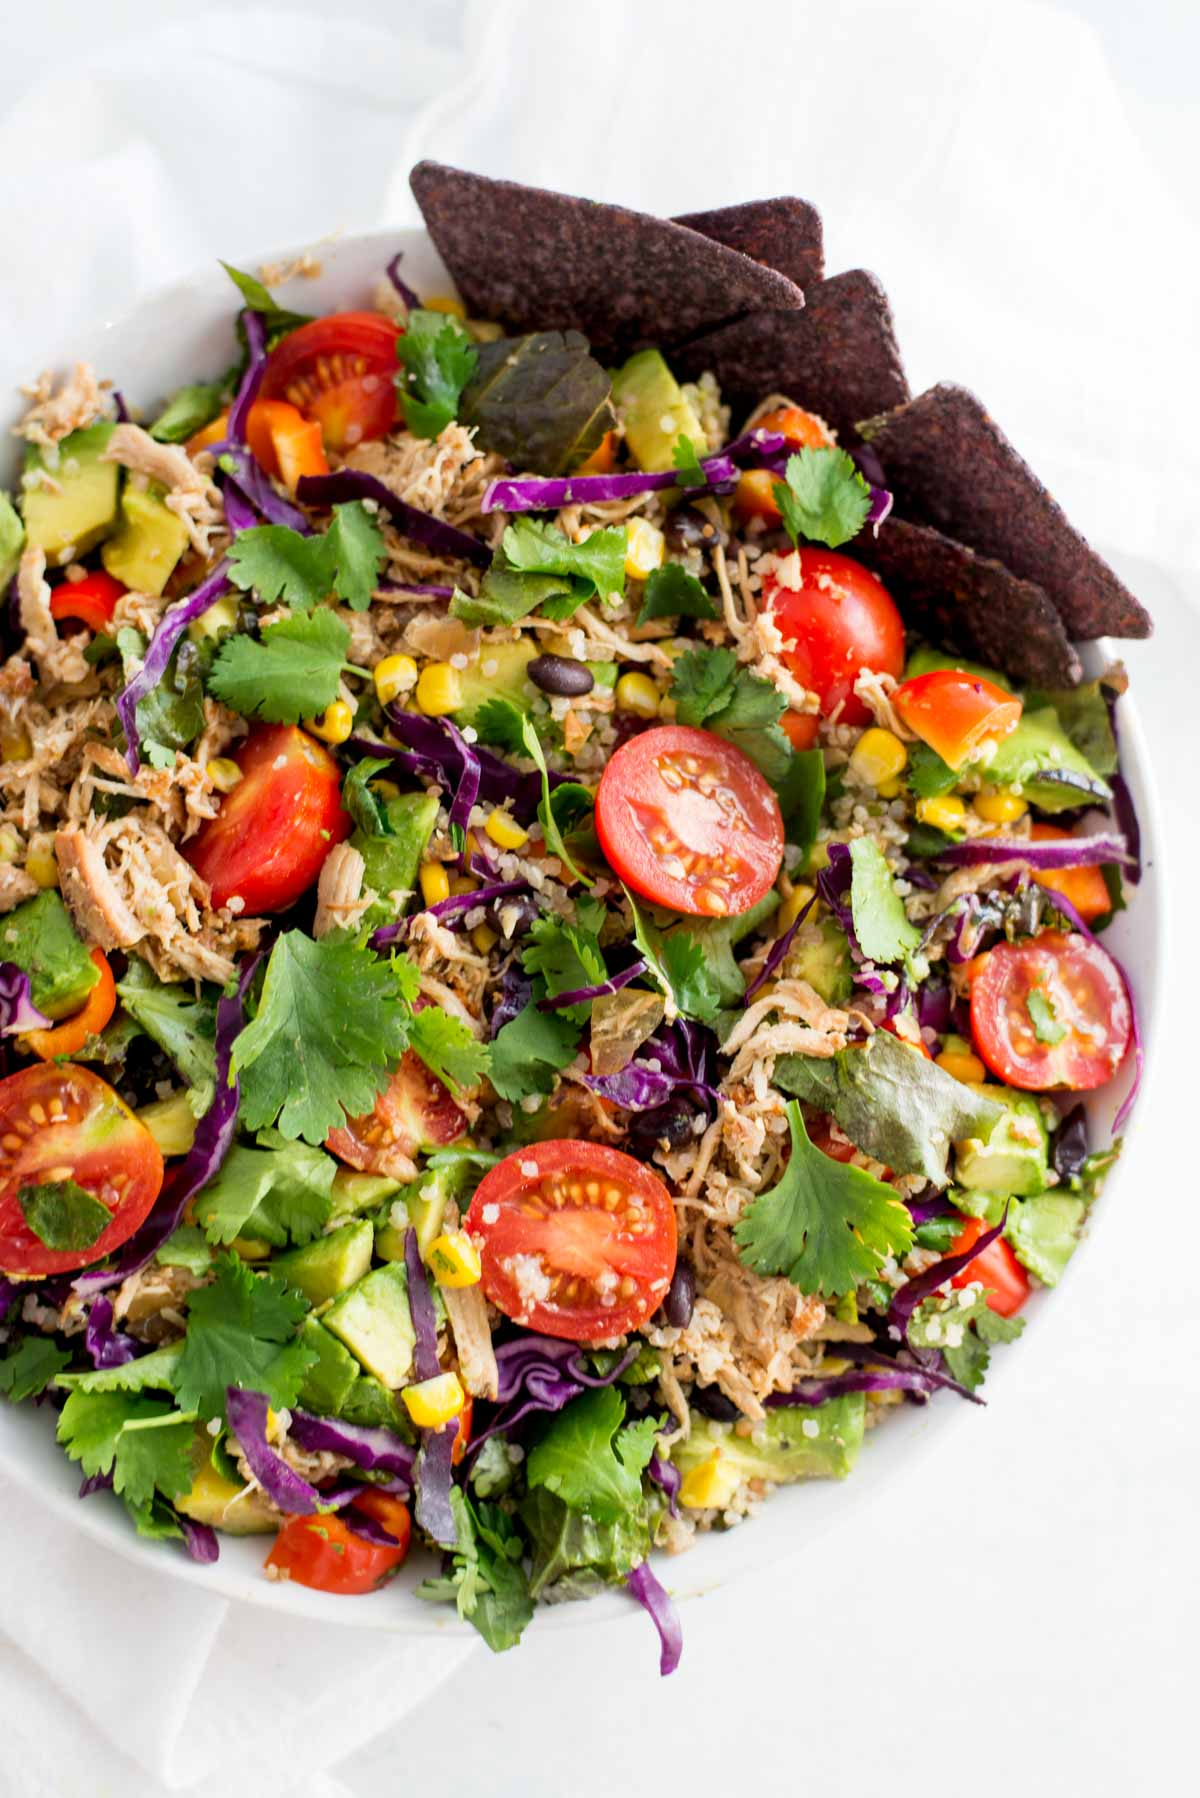 How to Build a Better Salad   simplerootswellness.com #salad #healthy #food #supper #lunch #easy #weight #health